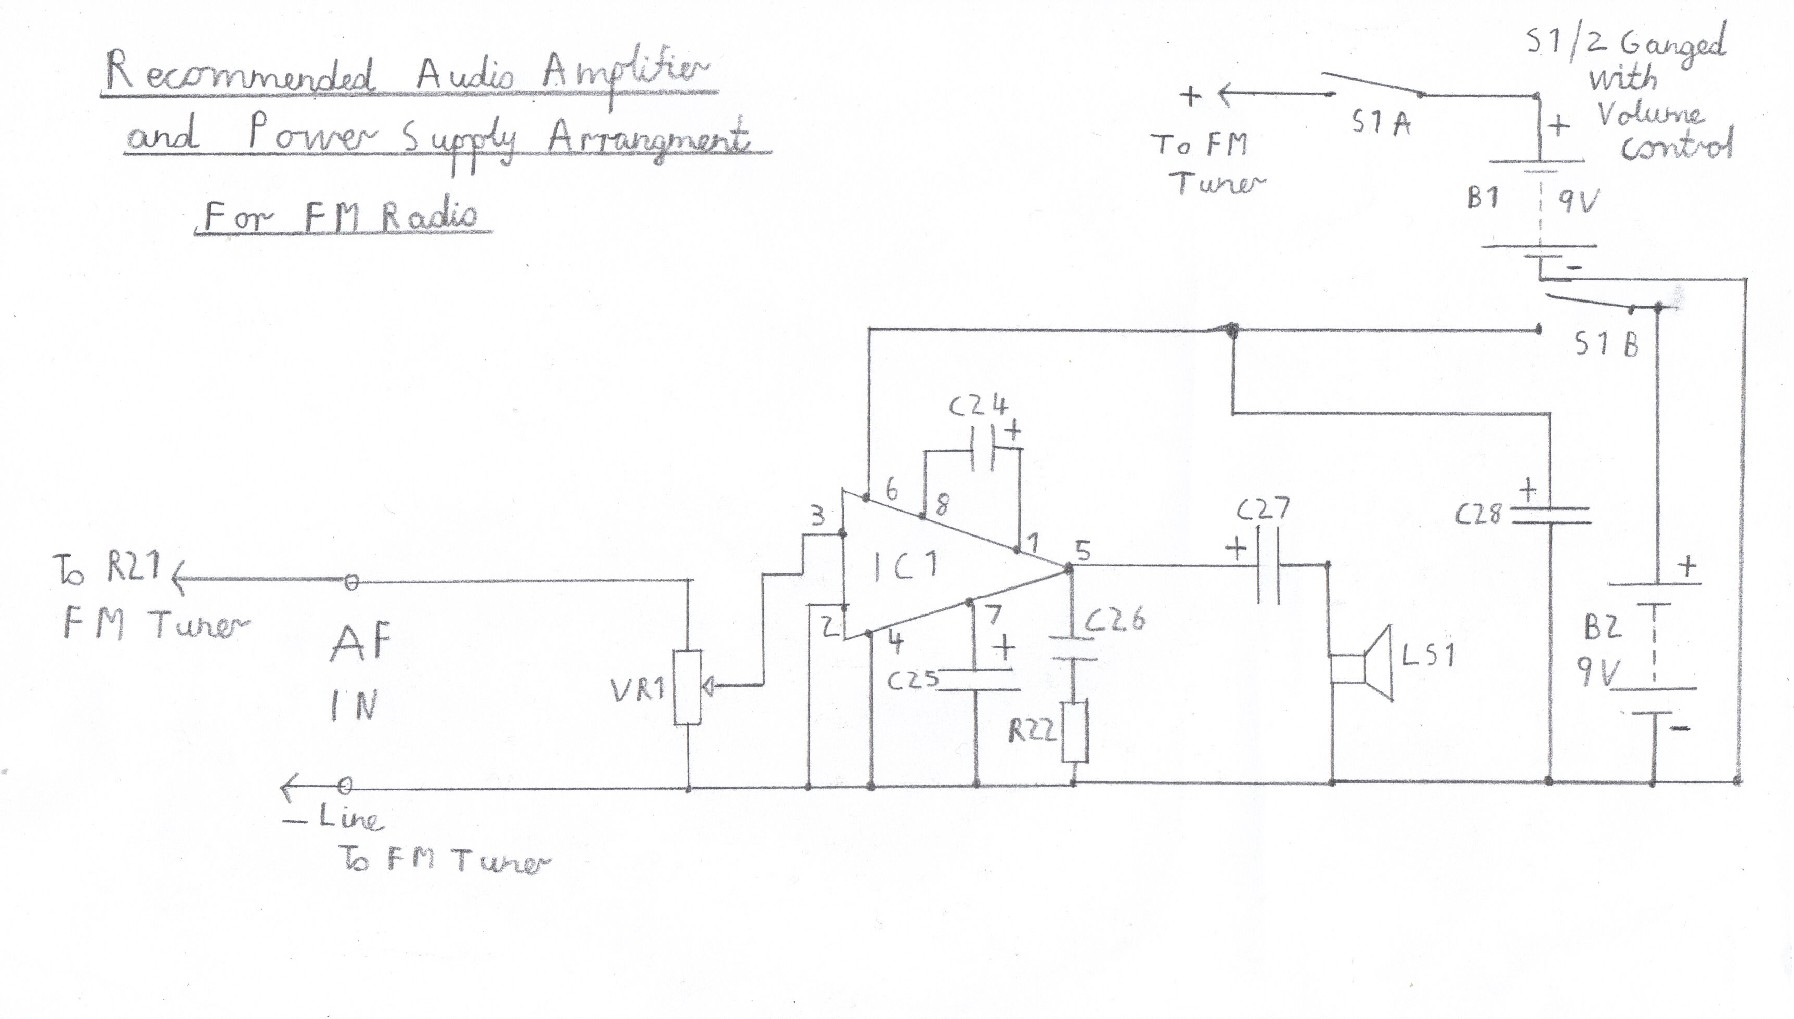 Transistor Fm Superhet Receiver Radio Antena Amplifier Circuit Design Suggested Audio For Tuner Please Refer To The Component List In Text